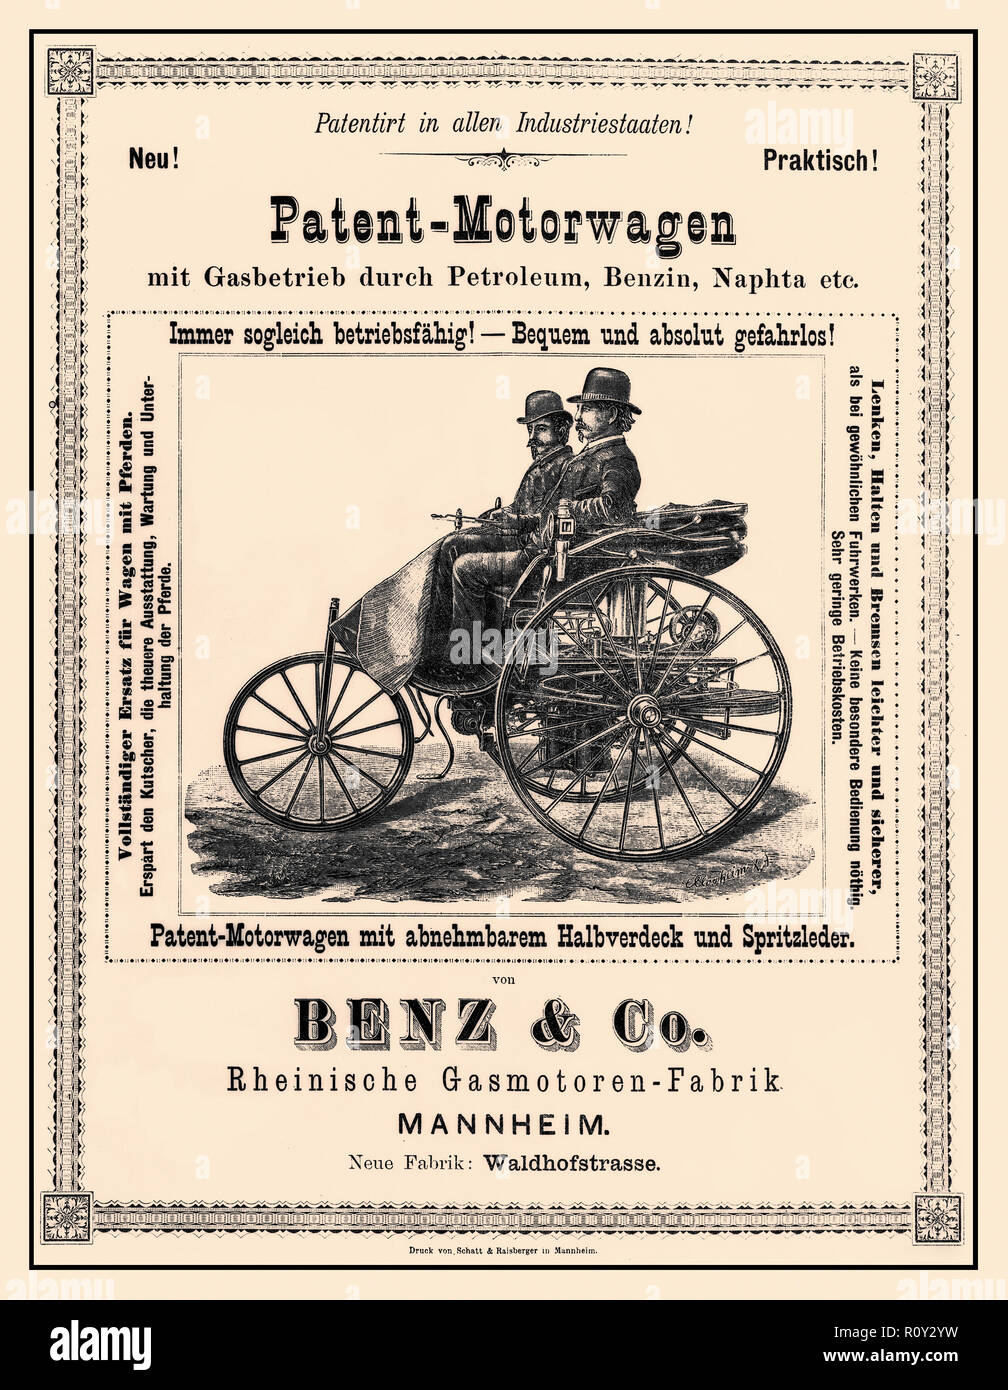 Vintage historic advertisement 1886 for 'The Patent-Motorwagen' Carl Benz unveiled his Patent-Motorwagen, the world's first motor car, in 1886. By 1894, a total of 25 had been built, with engine outputs varying between 1.5 and 3 horsepower (1.1-2.2 kW). The original Patent-Motorwagen was the Type I. It had steel-spoked wheels as well as further design details that took their cue from state-of-the-art bicycle manufacture at that time. - Stock Image